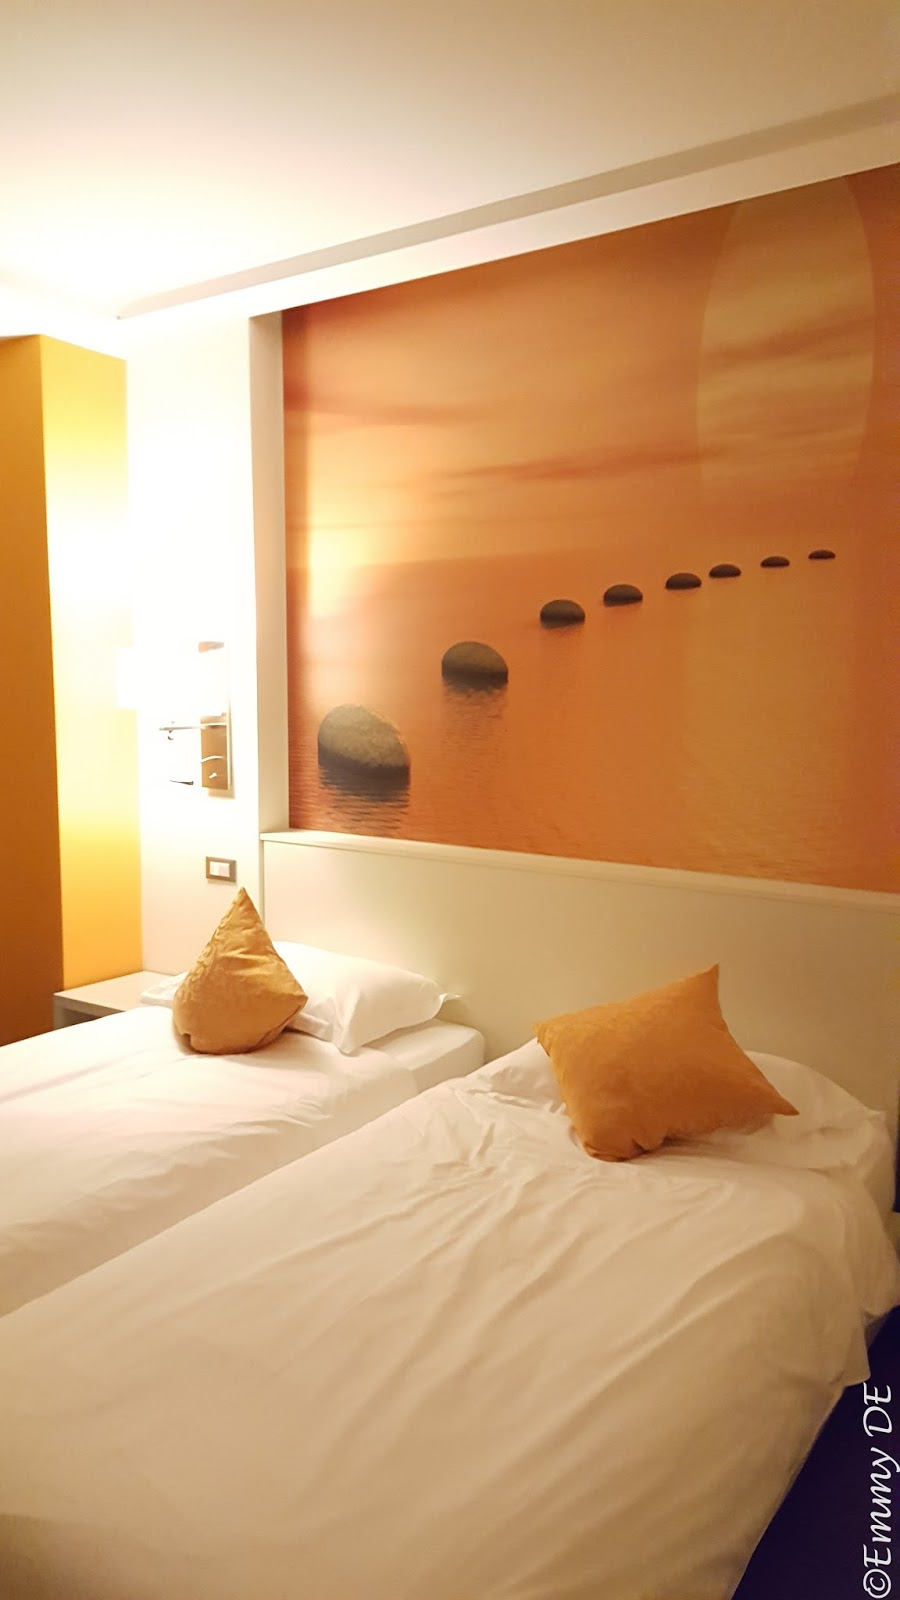 Ibis Budget: hotels offering all the services of a modern hotel at a very reasonable price.